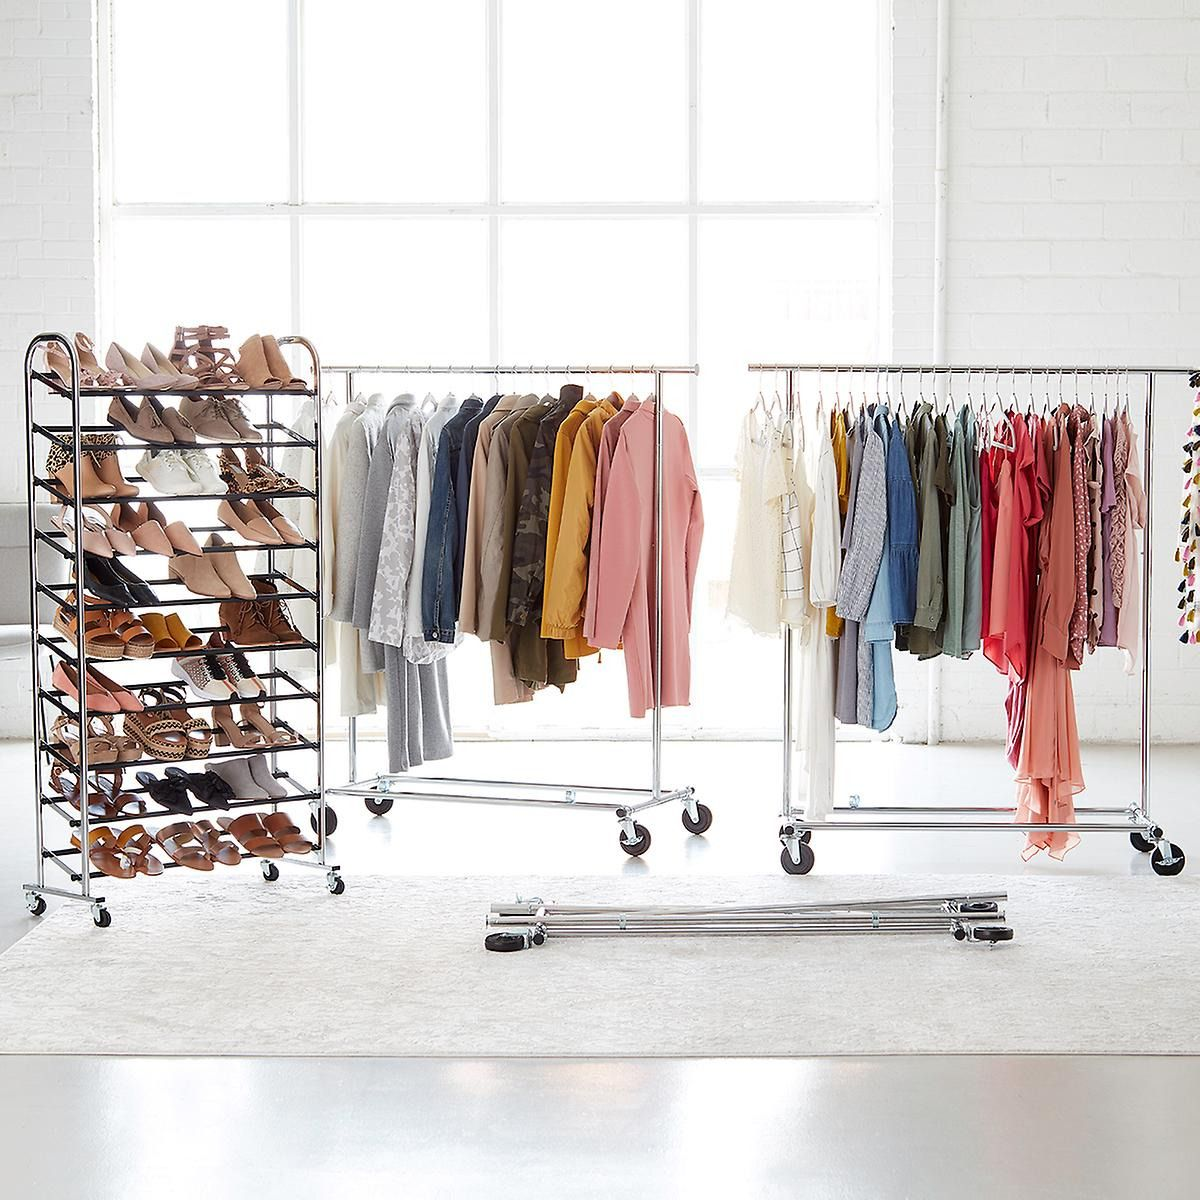 Metal racks holding shoes and clothing.